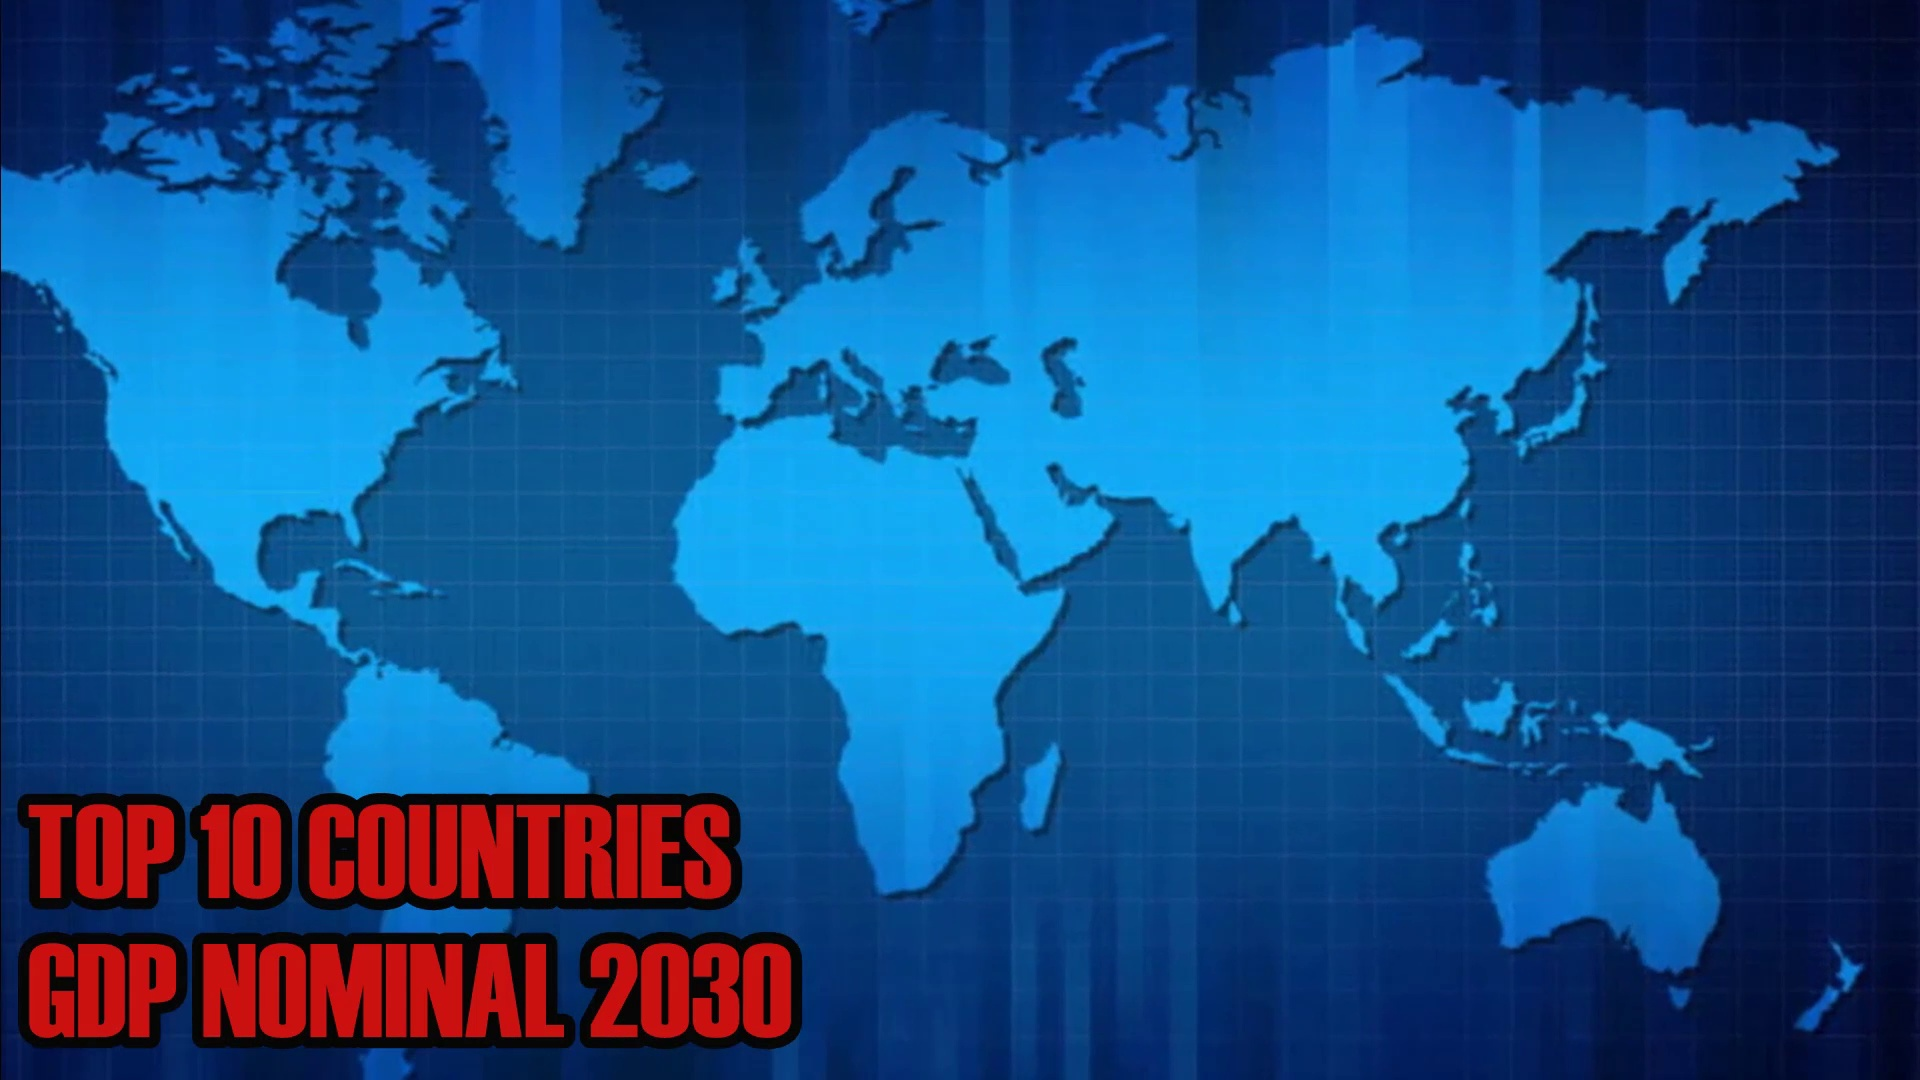 TOP 10 WORLD'S LARGEST ECONOMIES 2030 | WORLD GDP RANKING 2030 | GDP 2030 | projected gdp per capita 2030 | Biggest Economies in 2030 |  fastest growing Economies in 2030